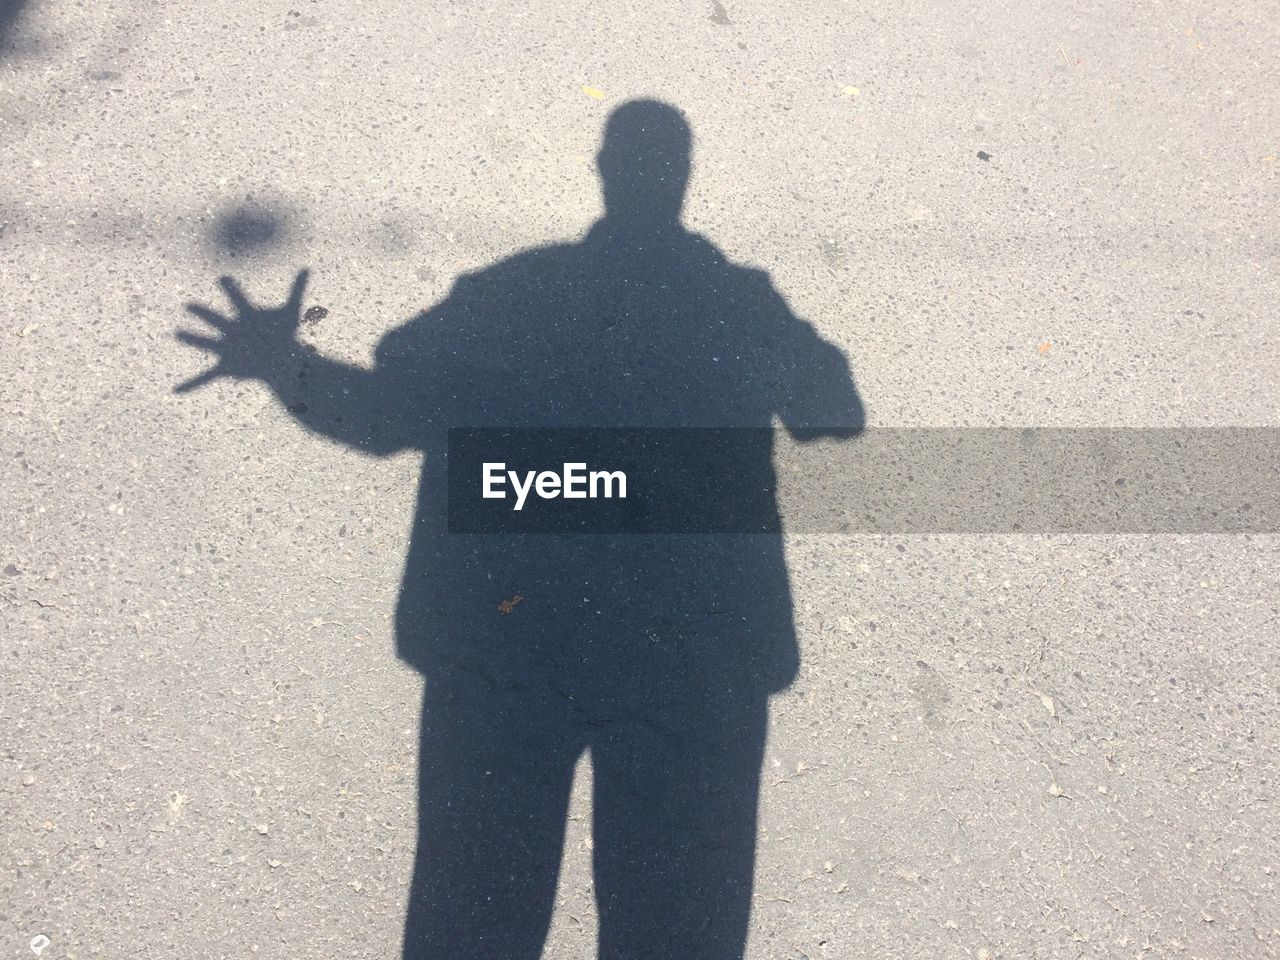 shadow, focus on shadow, sunlight, real people, silhouette, gesturing, men, outdoors, day, standing, one person